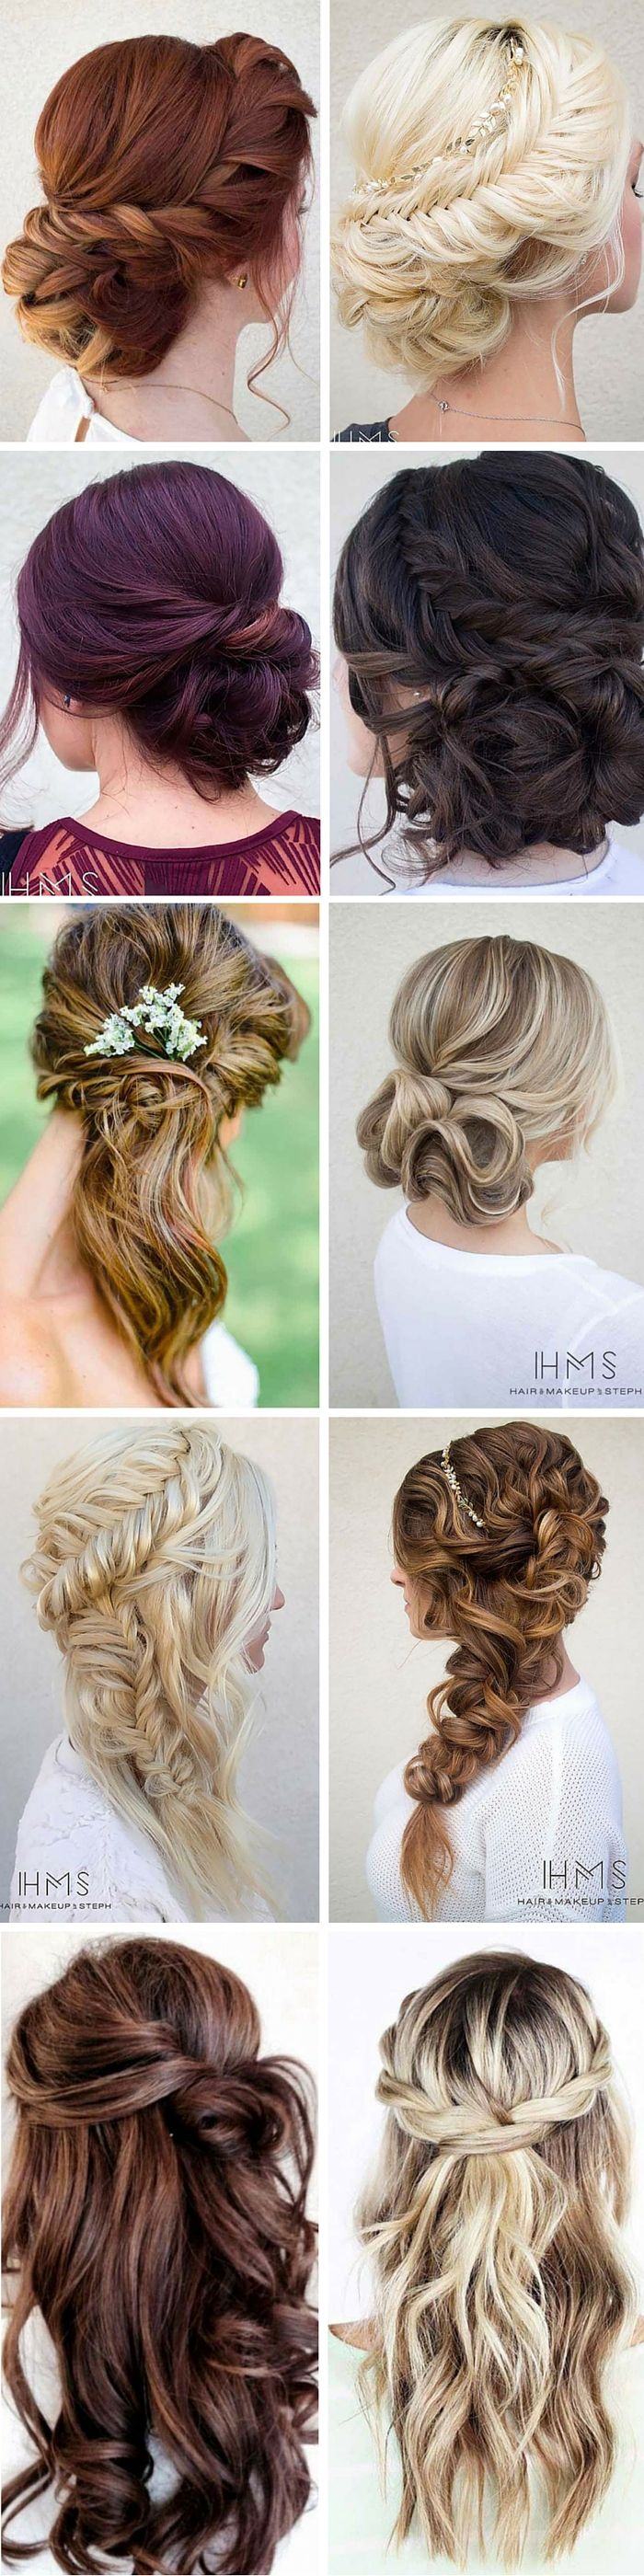 Elige el peinado que mejor queda con tu vestido de #innovias See more: http://www.weddingforward.com/hottest-bridesmaids-hairstyles-ideas/ #wedding #hairstyles